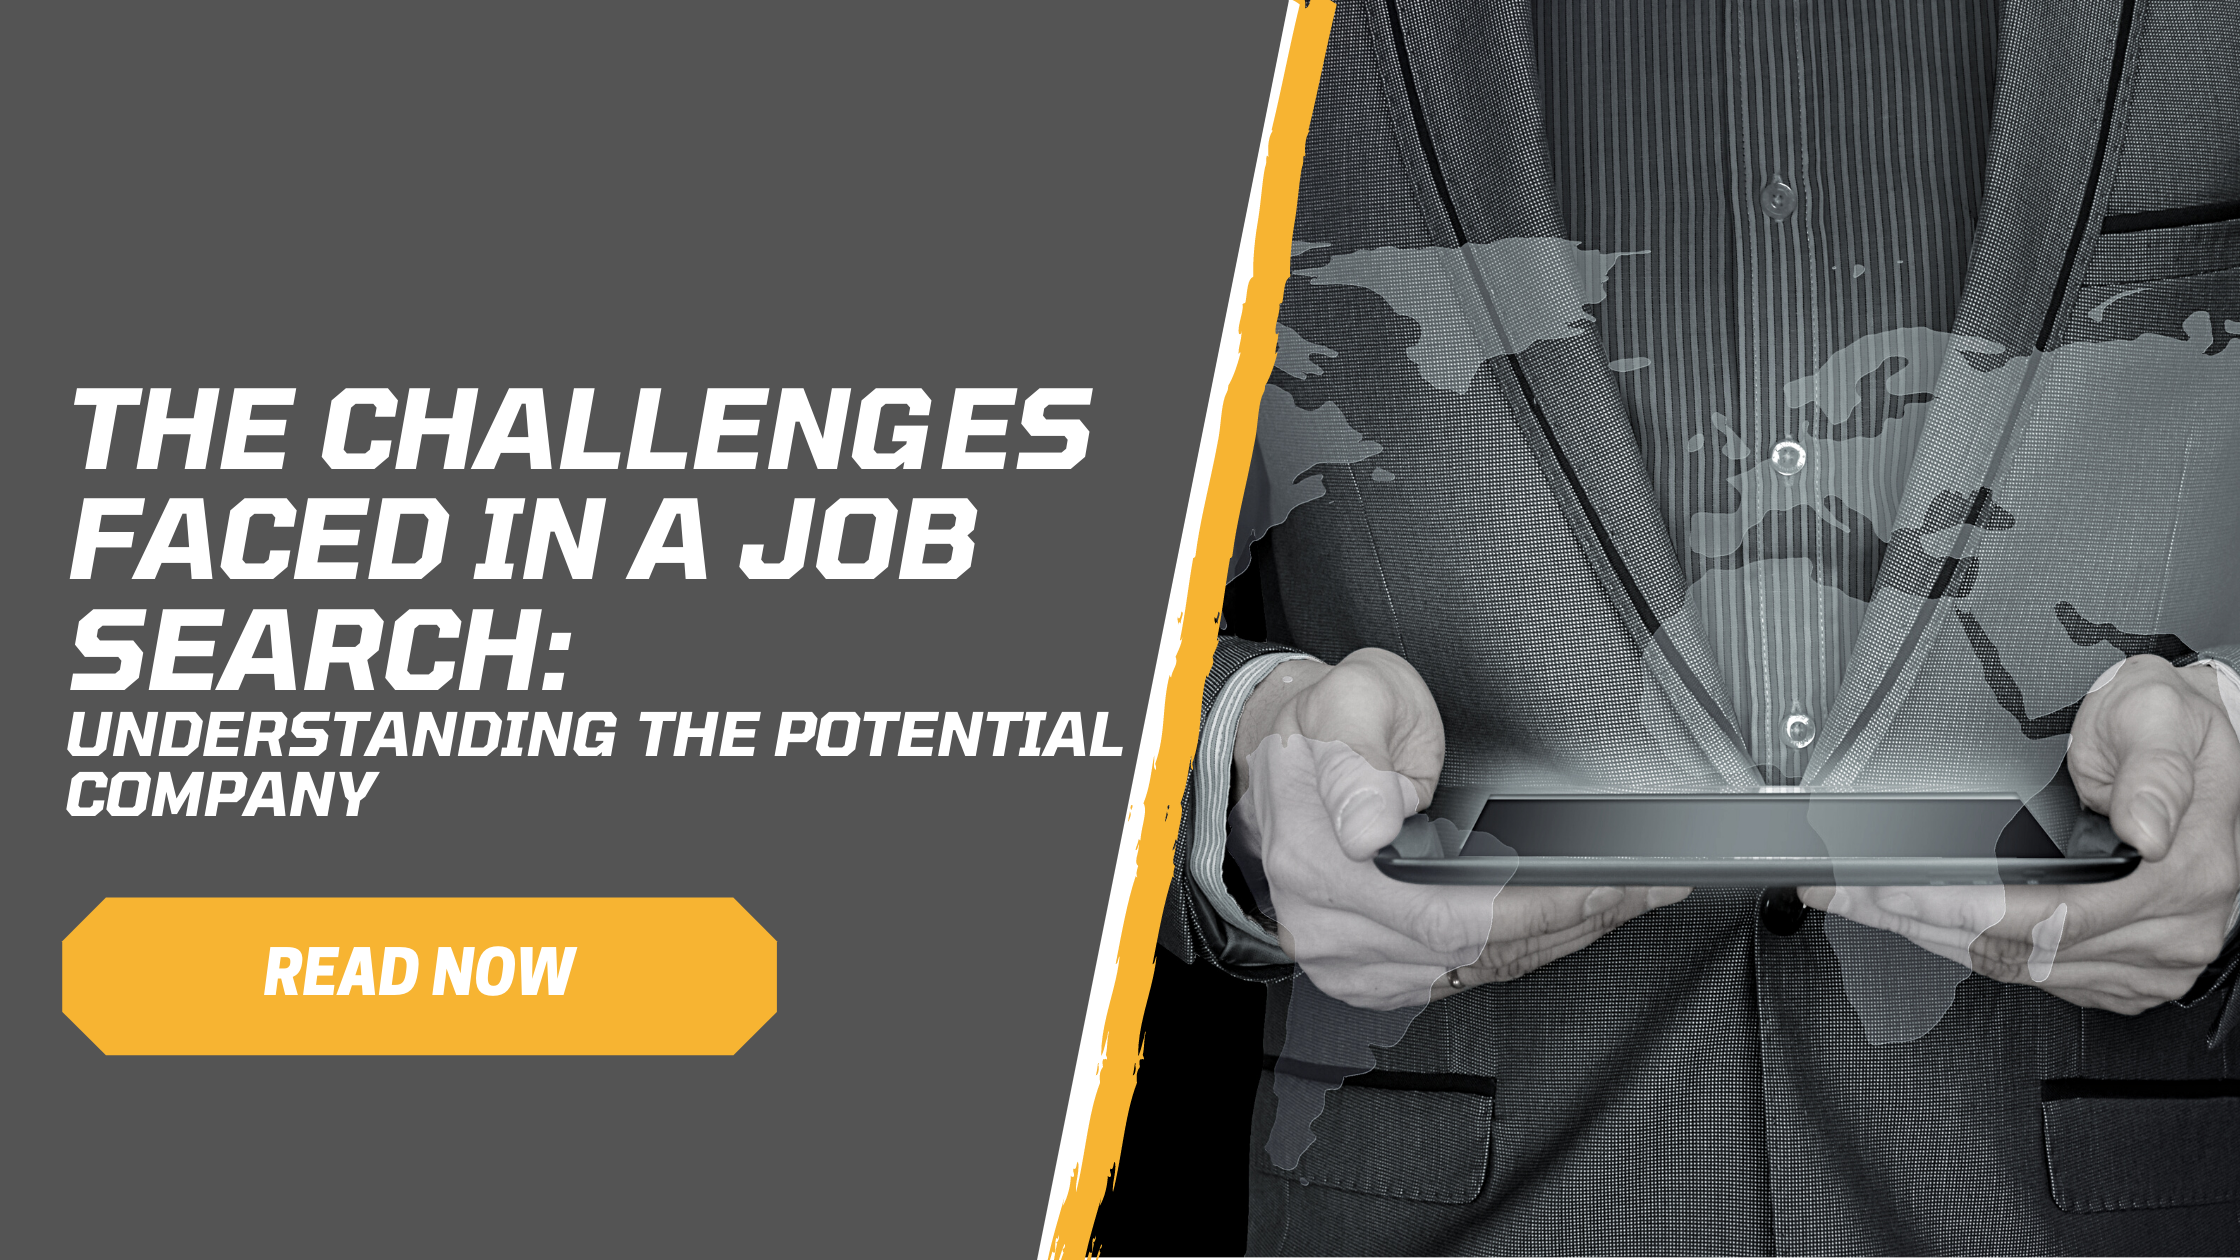 The Challenges faced during a job search: Understanding the potential company